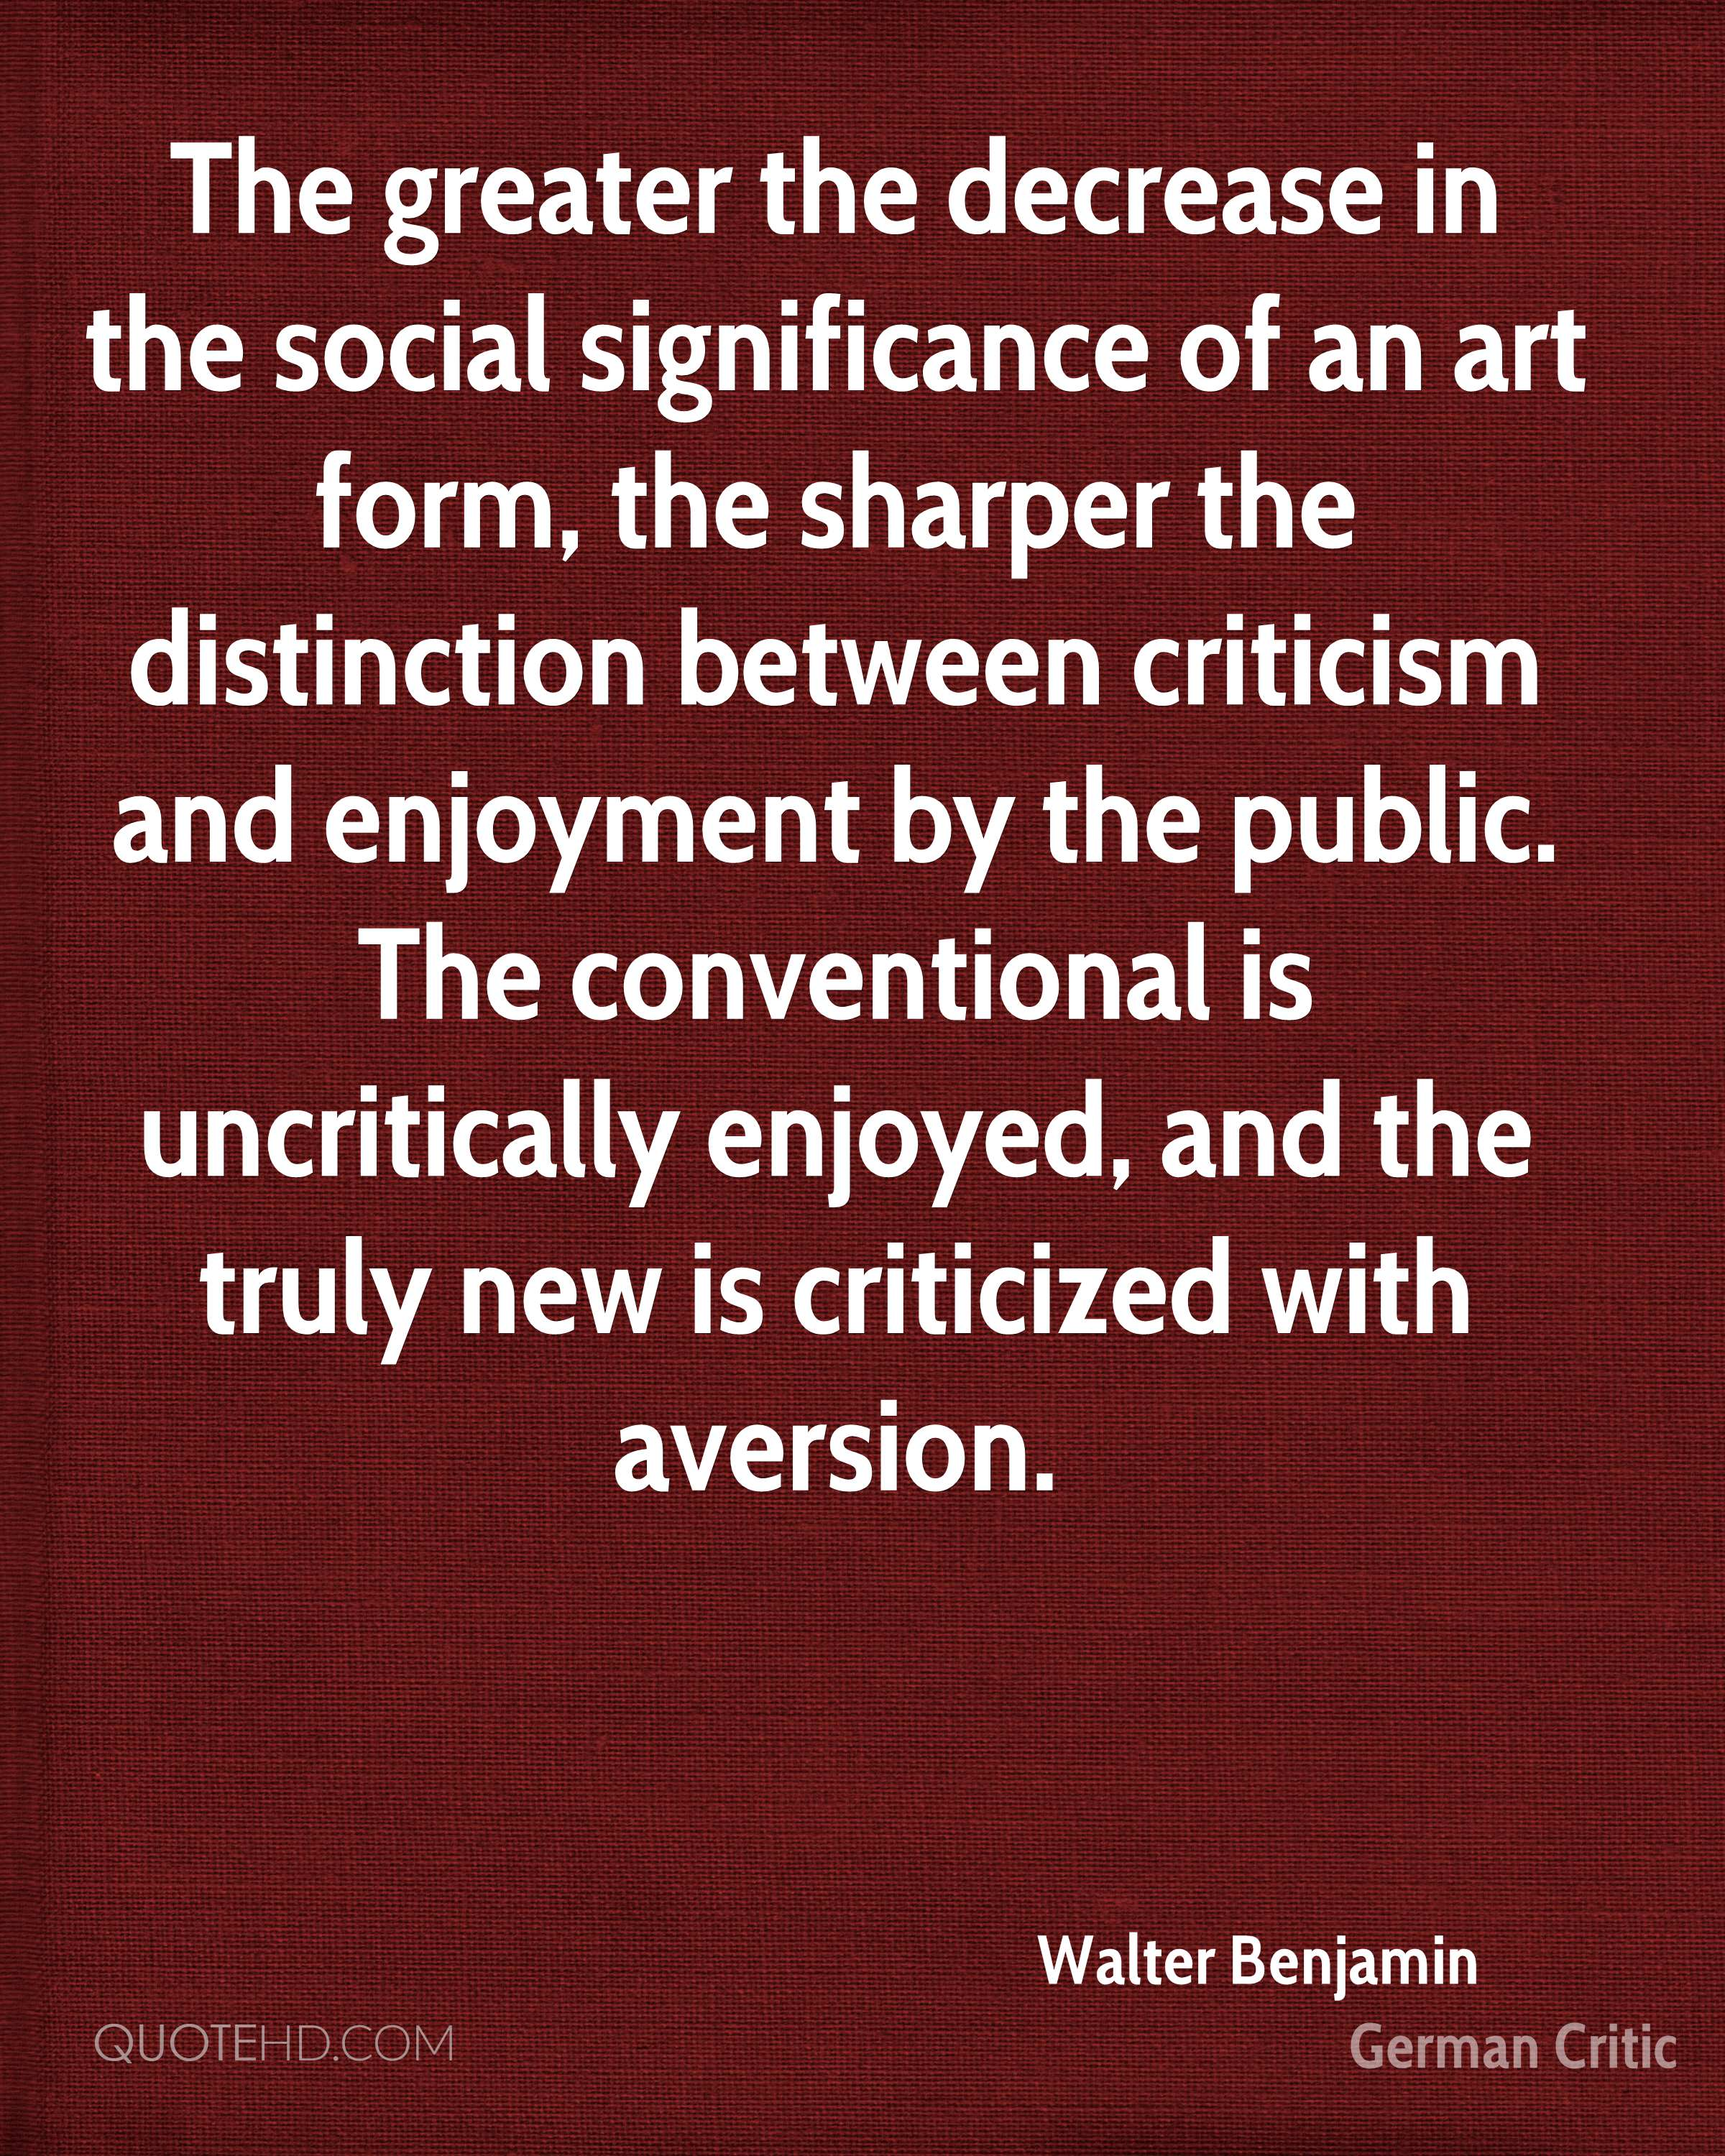 The greater the decrease in the social significance of an art form, the sharper the distinction between criticism and enjoyment by the public. The conventional is uncritically enjoyed, and the truly new is criticized with aversion.